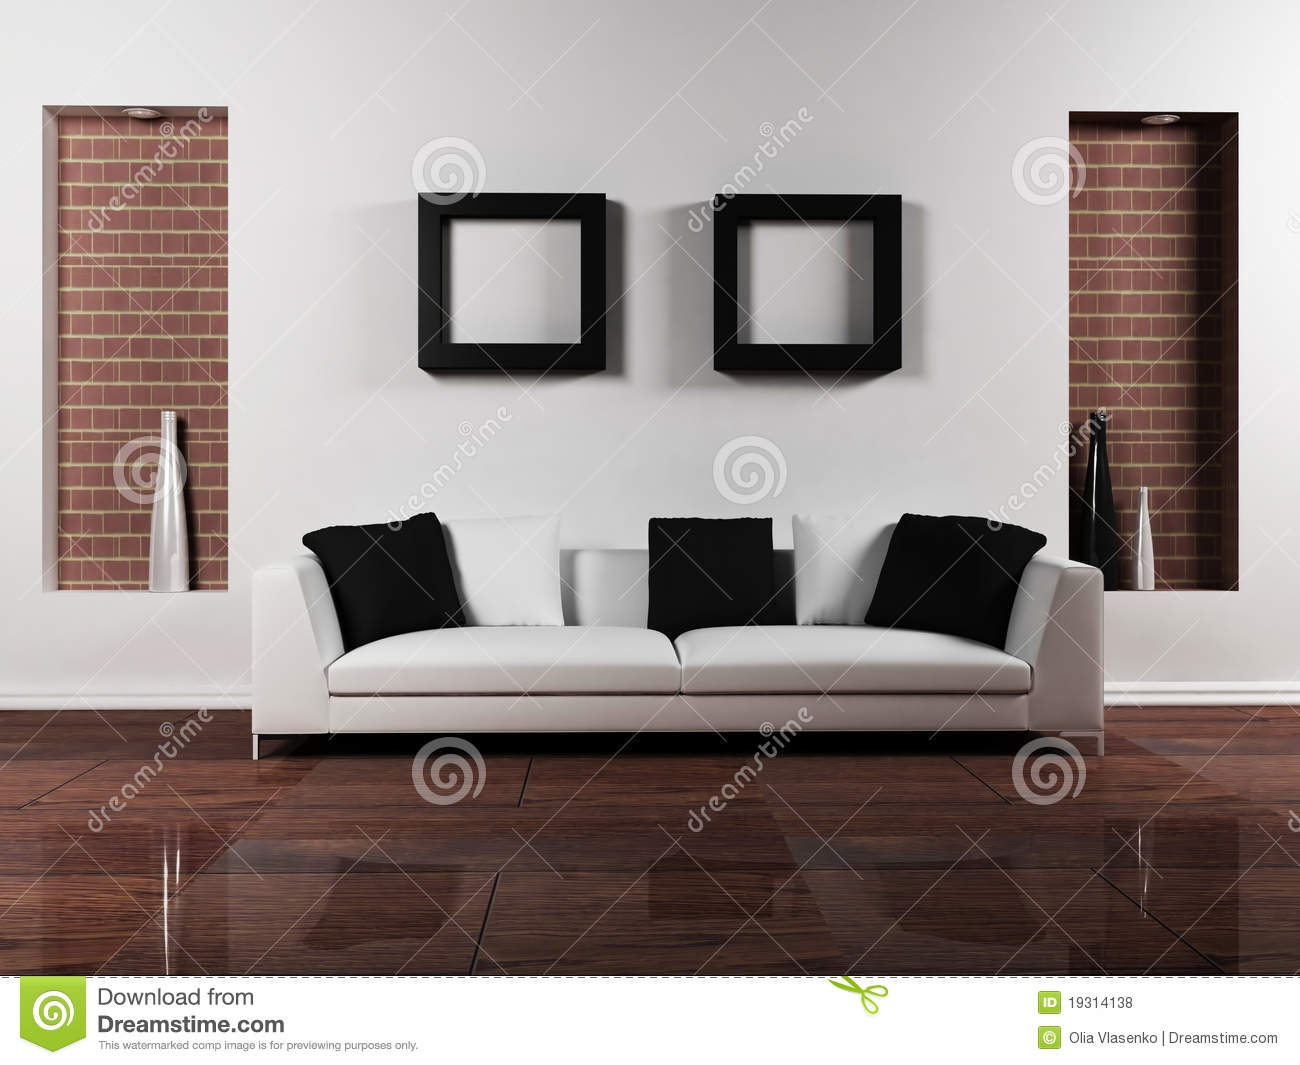 Modern Interior Design Of Living-room oyalty Free Stock Photos ... - ^